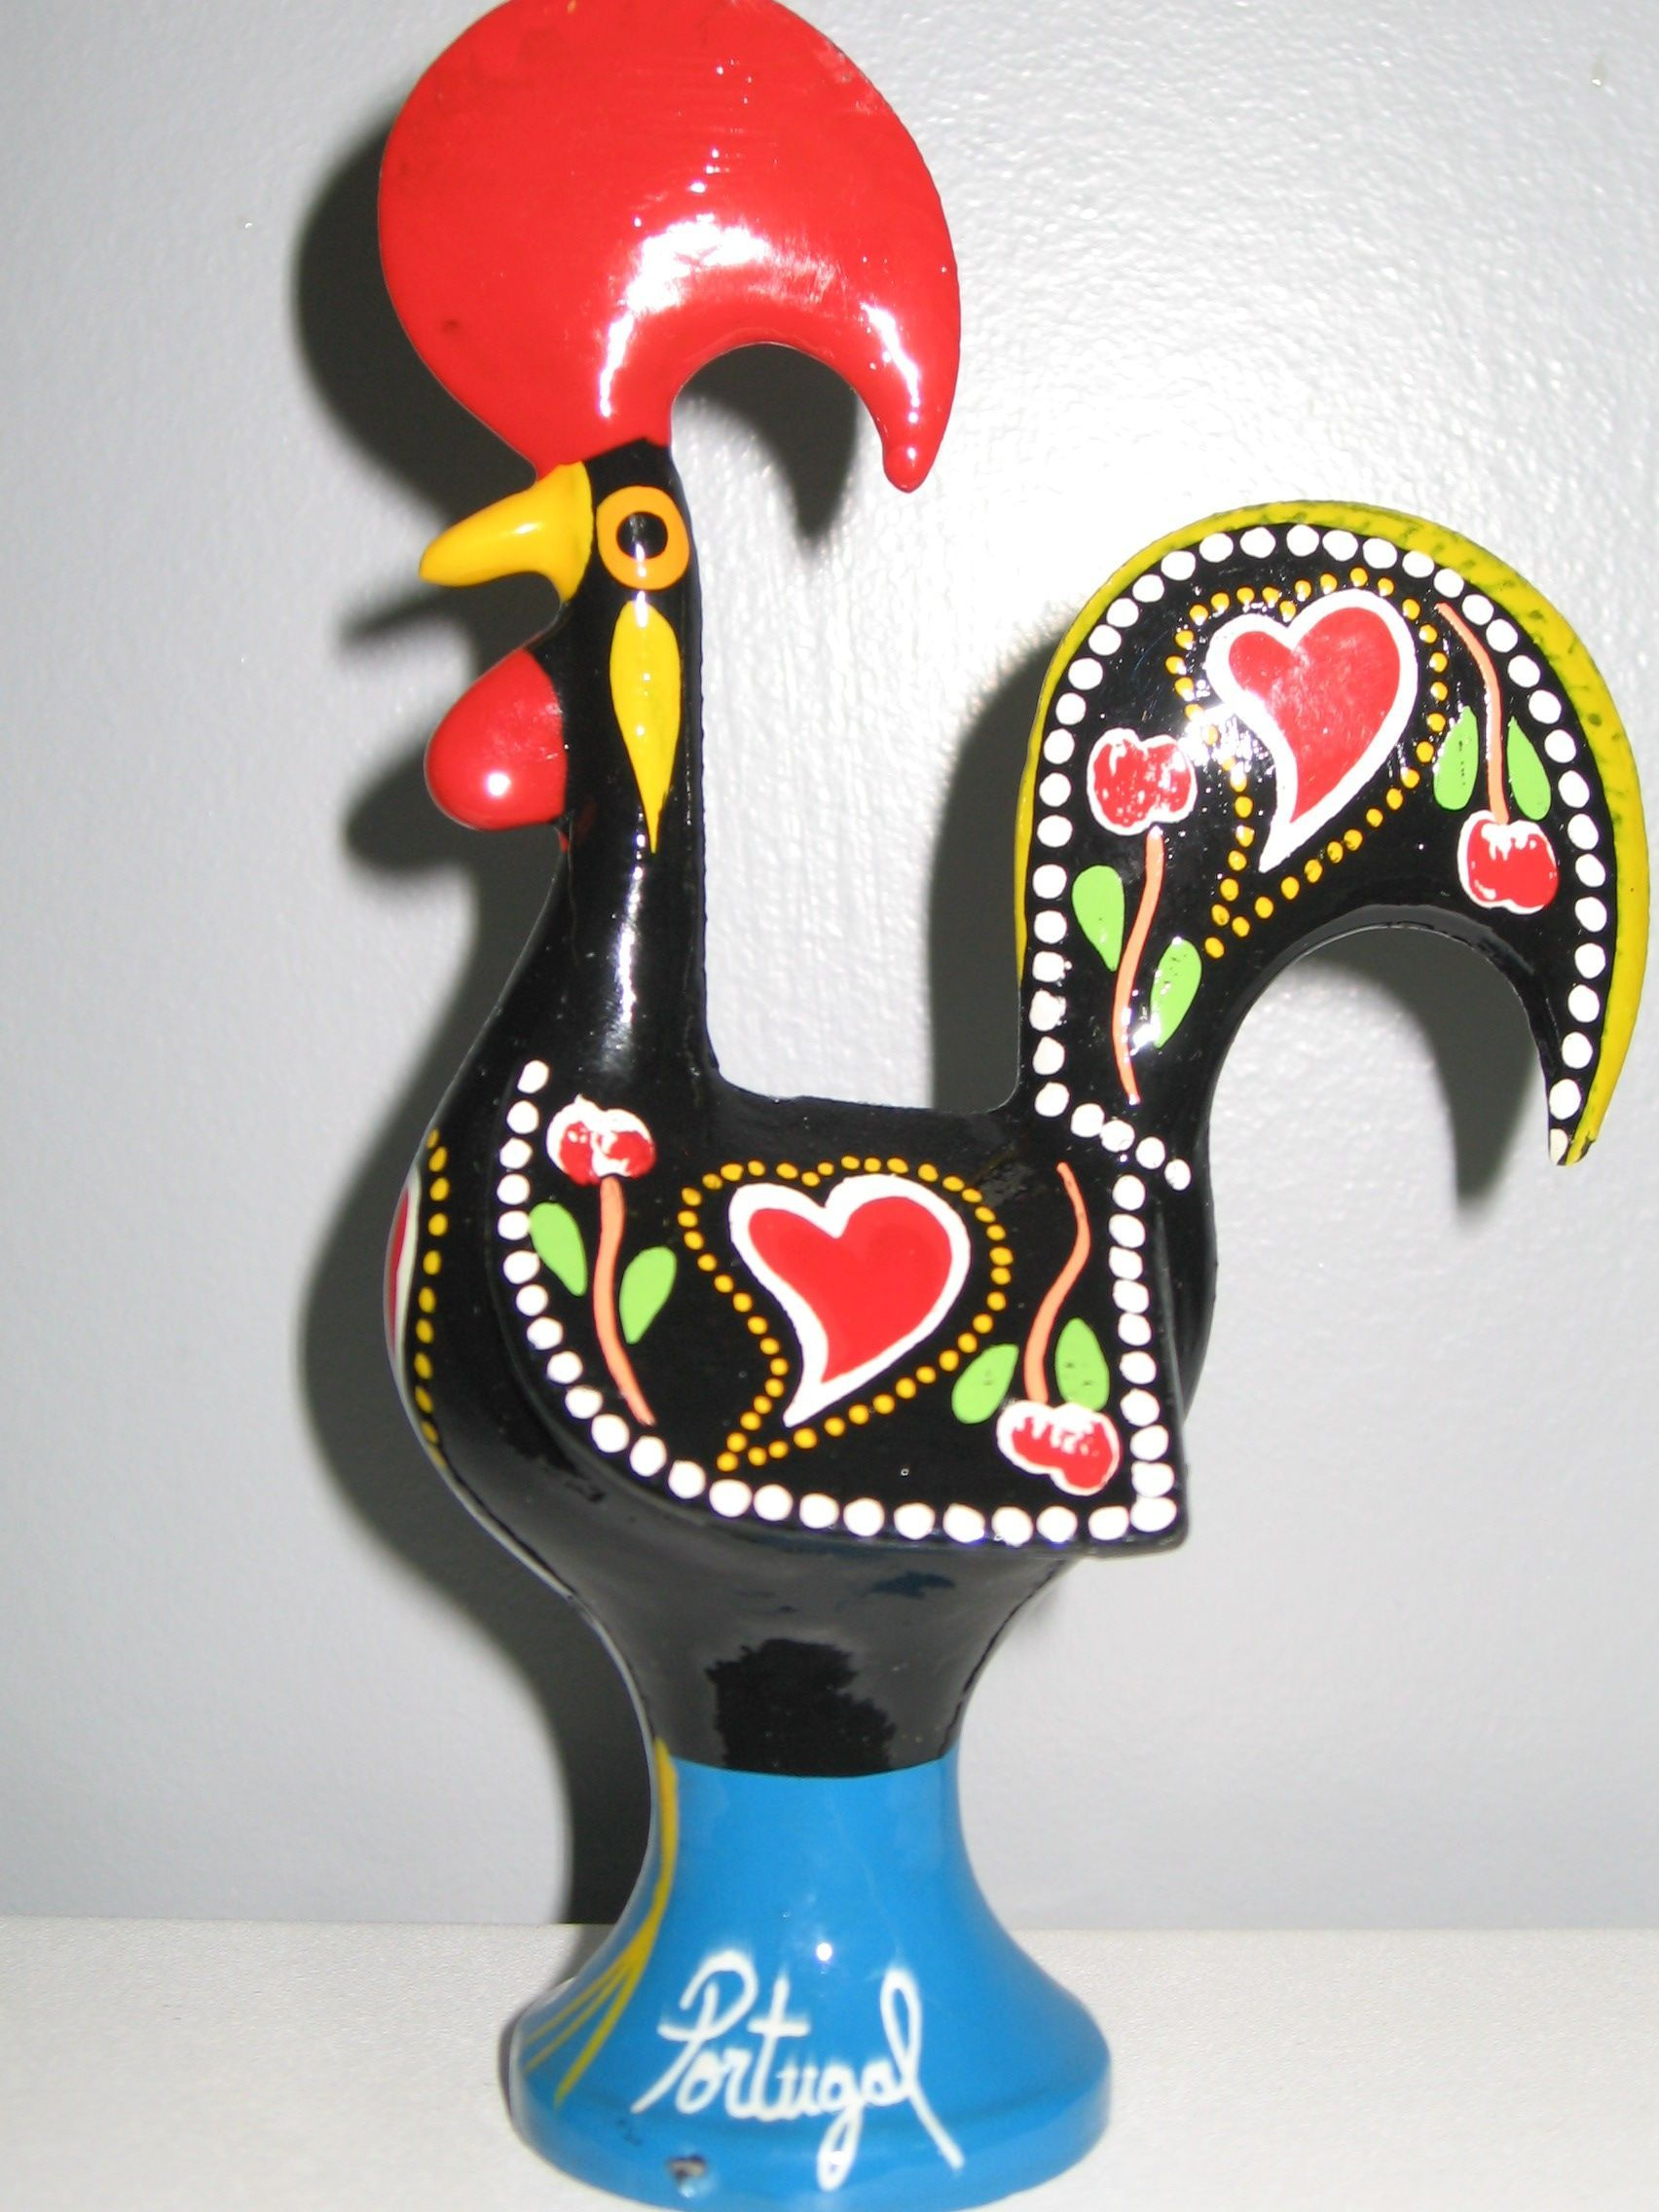 Nixi S Pix On The Slippery Slopes Of Sintra Rooster Art Rooster Decor Portuguese Culture